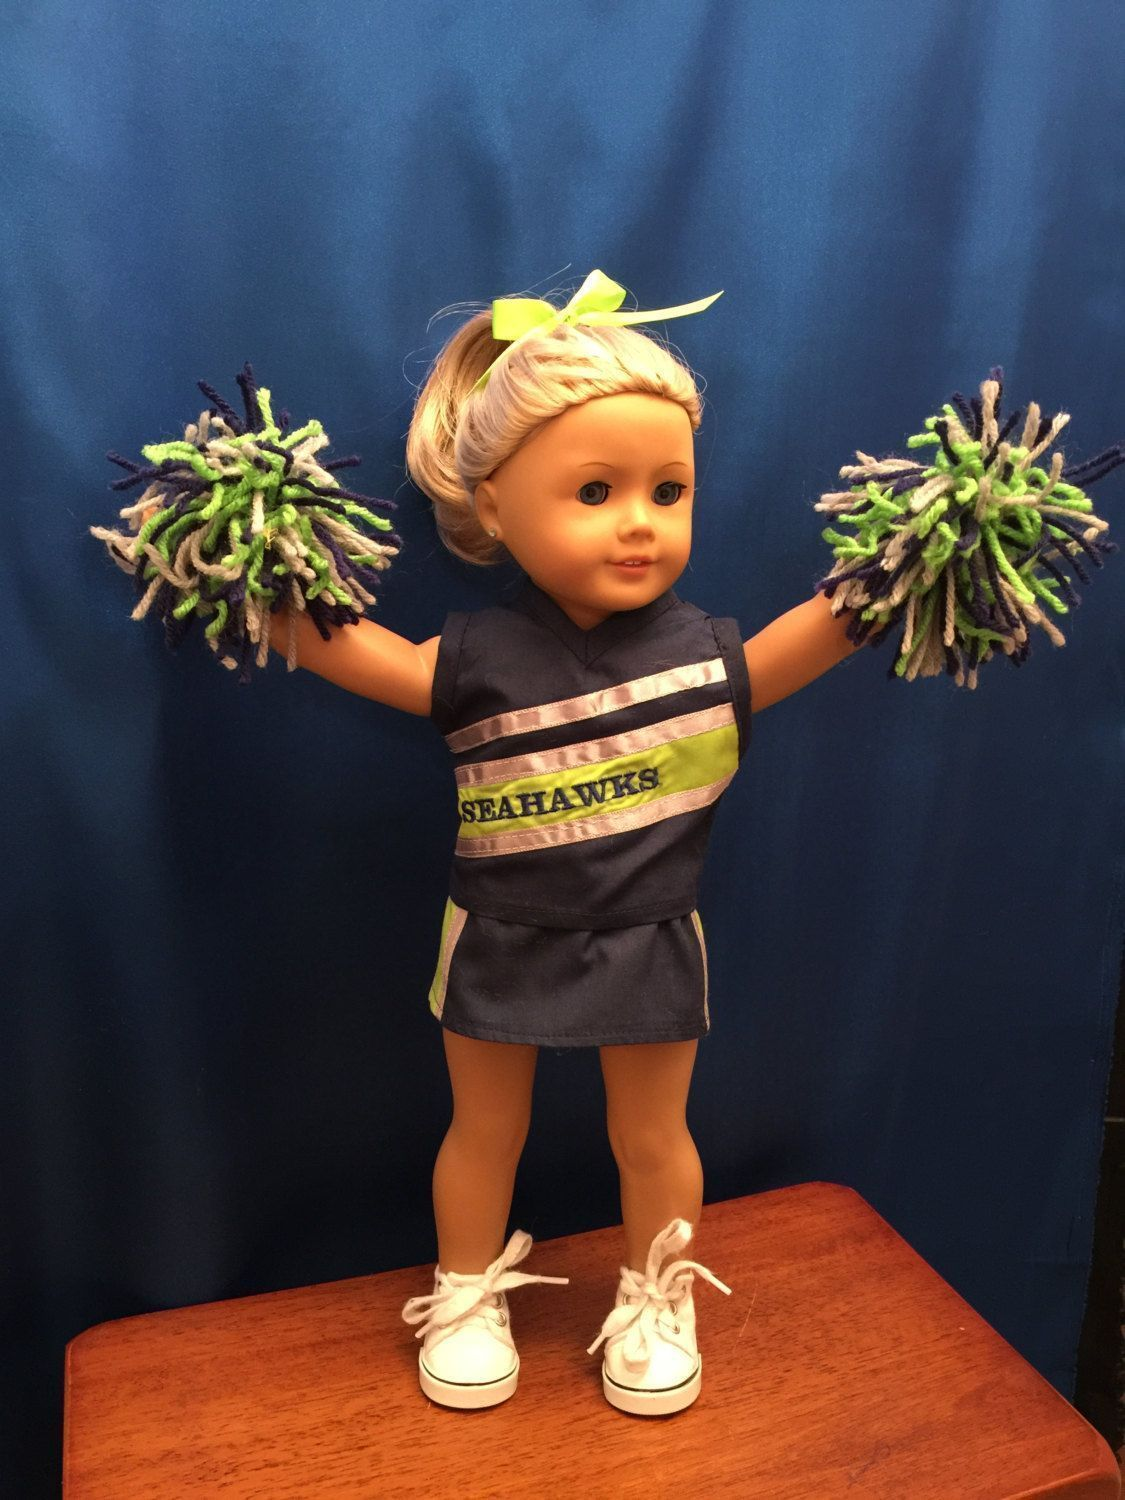 Homemade Doll Clothes For 18 Inch Dolls Like American Girl Dolls: Seahawks Cheerleading Outfit Made From Jelly Bean Soup Pattern by CutzieDollFashions on Etsy #18inchcheerleaderclothes Homemade Doll Clothes For 18 Inch Dolls Like American Girl Dolls: Seahawks Cheerleading Outfit Made From Jelly Bean Soup Pattern by CutzieDollFashions on Etsy #18inchcheerleaderclothes Homemade Doll Clothes For 18 Inch Dolls Like American Girl Dolls: Seahawks Cheerleading Outfit Made From Jelly Bean Soup Pattern b #18inchcheerleaderclothes